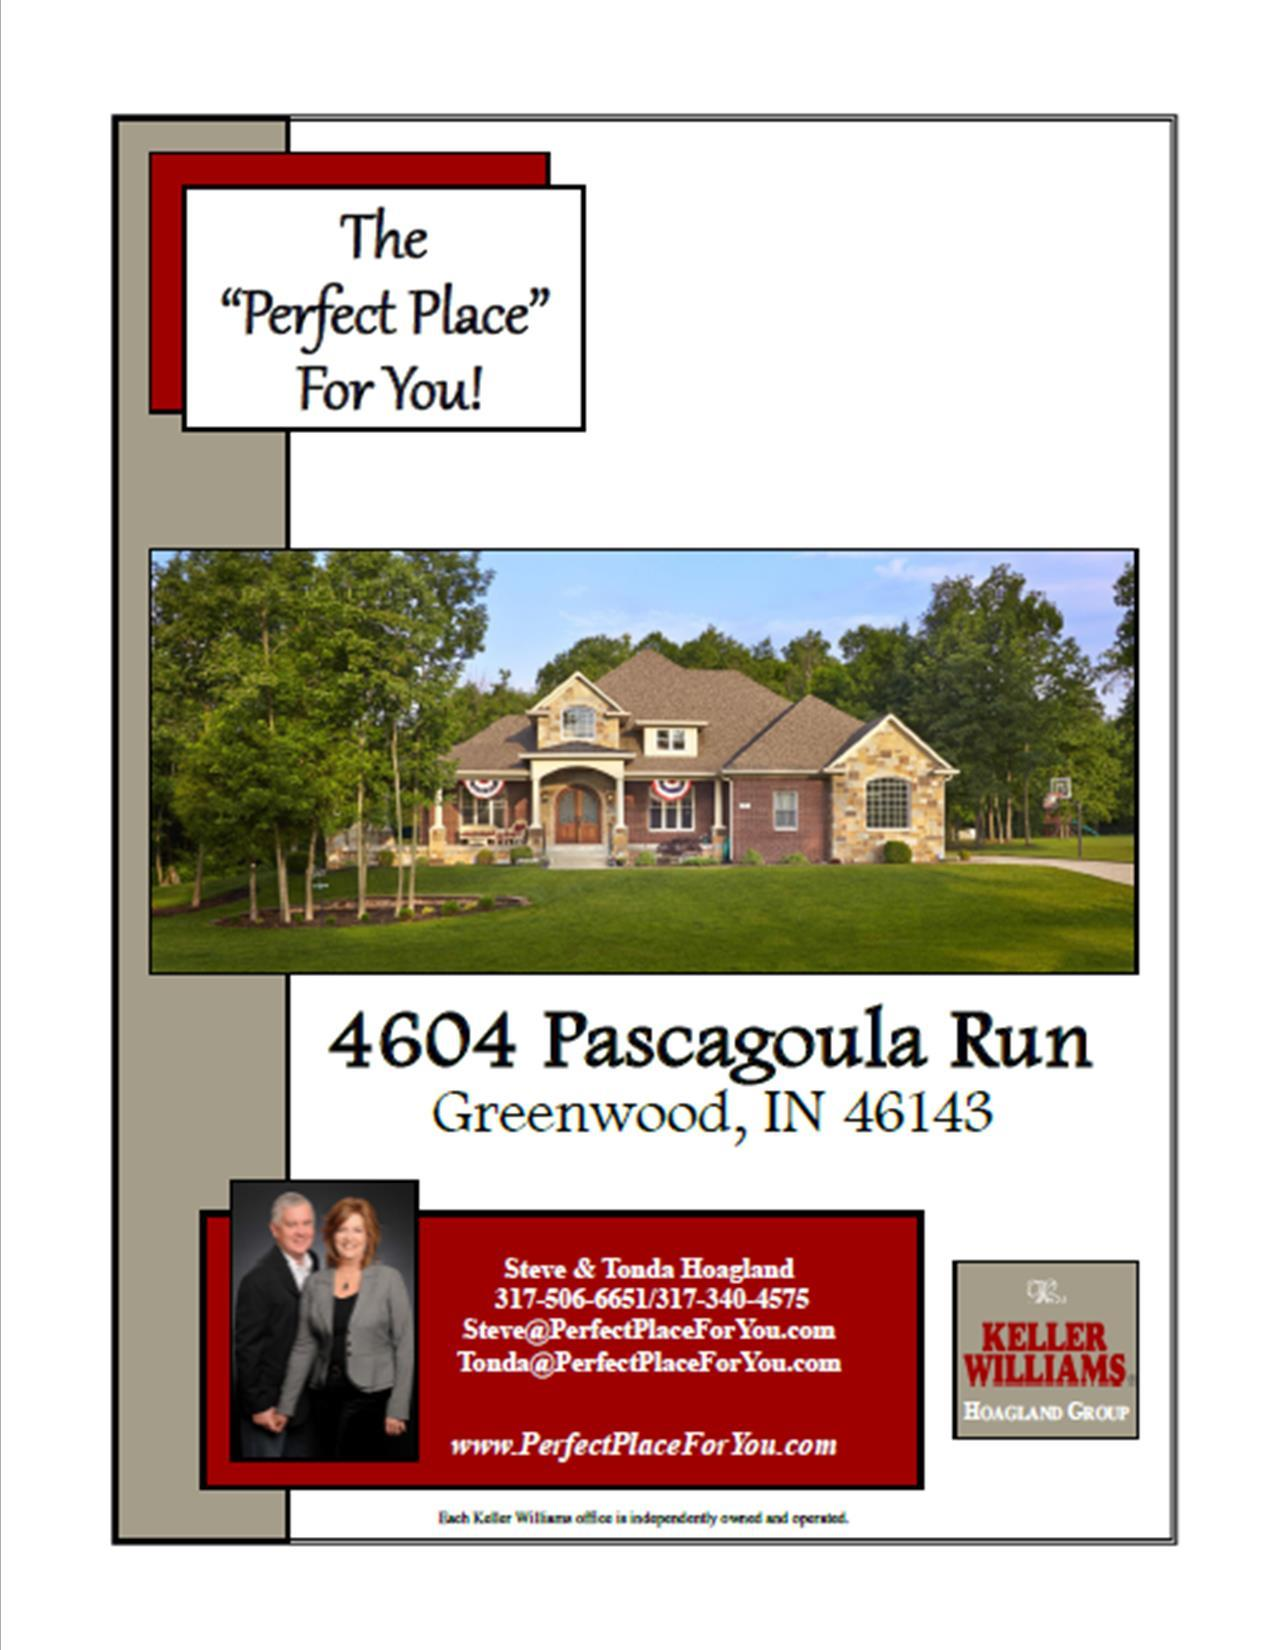 hoagland group sells greenwood homes with pre-showing announcment